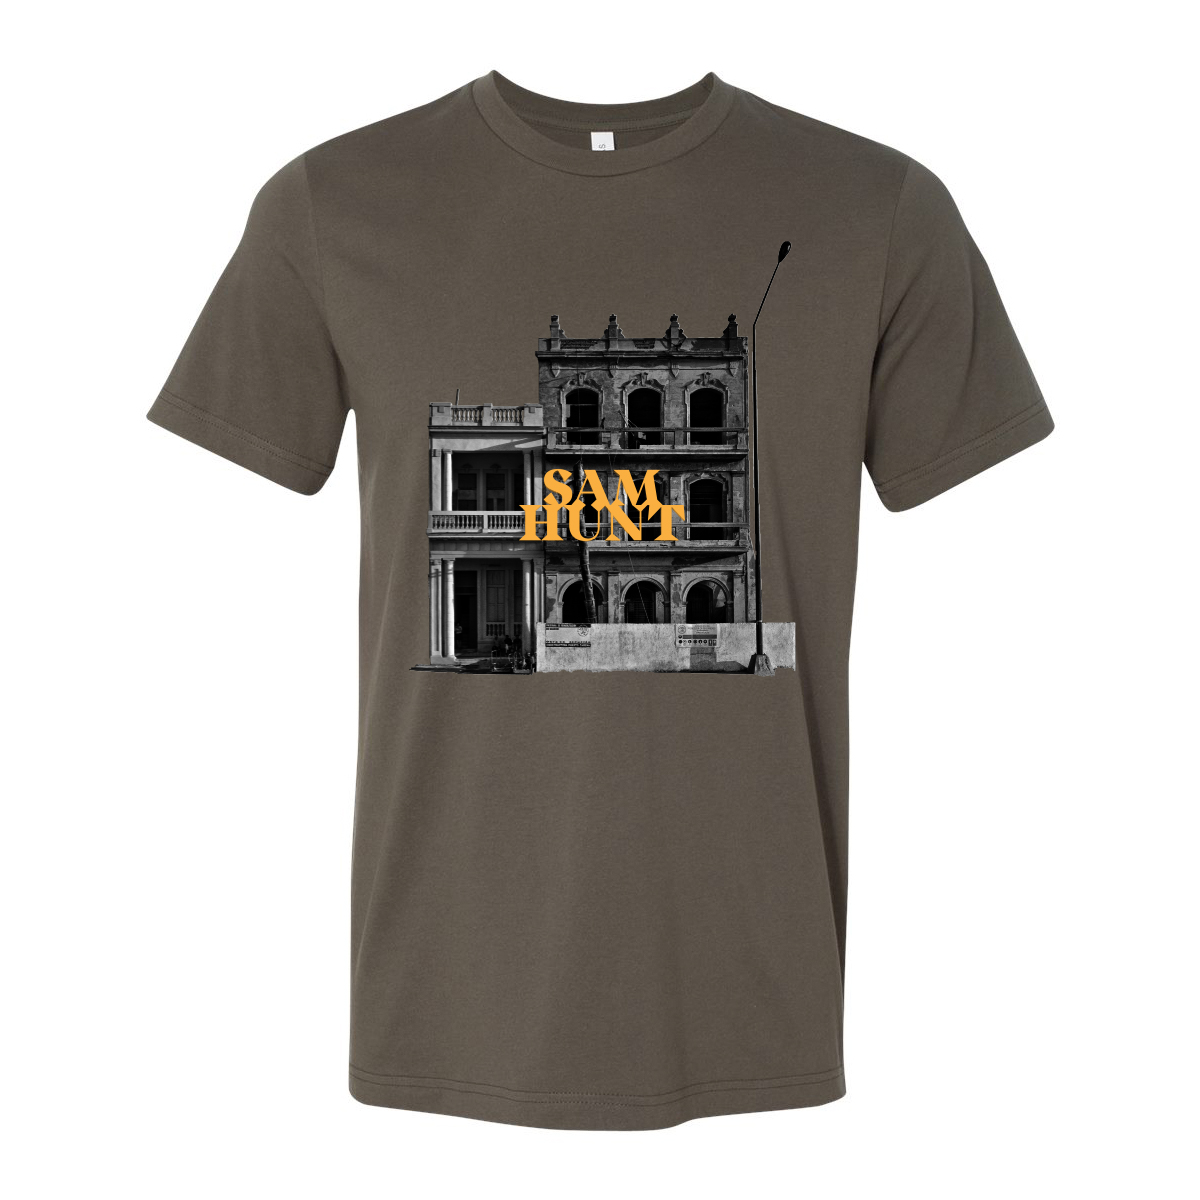 Downtown 2018 Tour Army Green T-shirt